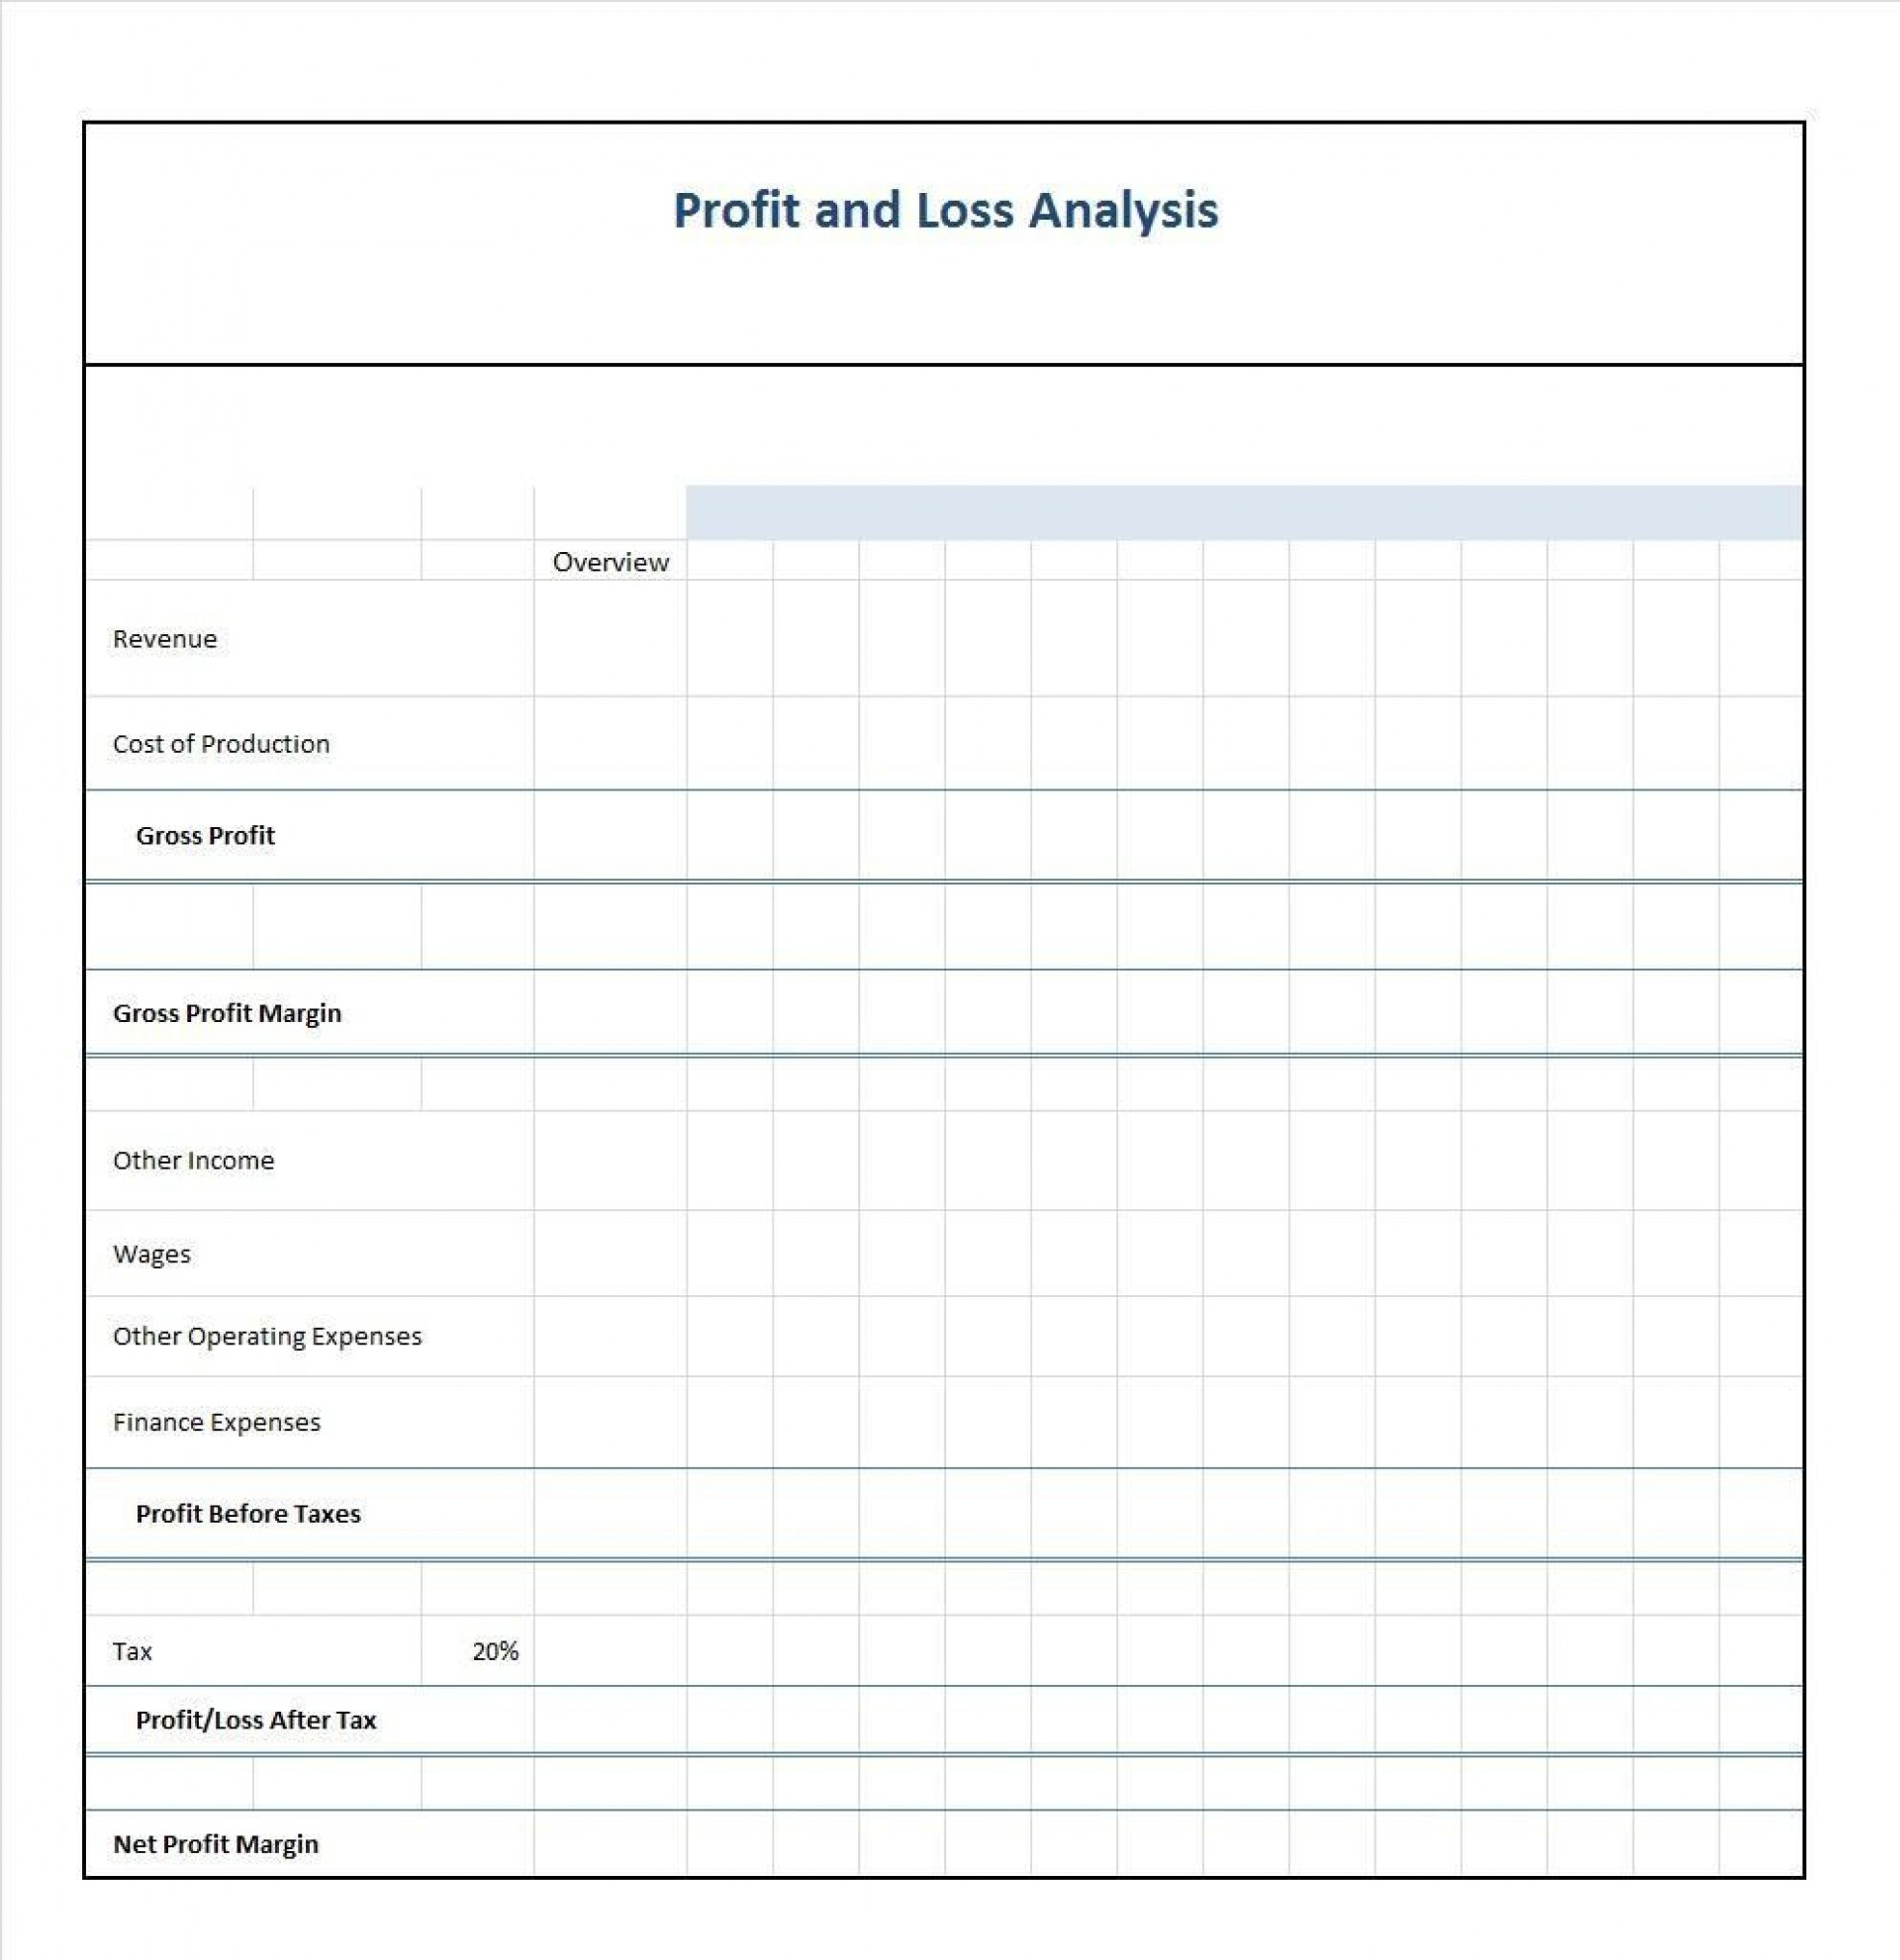 001 Imposing Blank Income Statement Template Image  Form1920